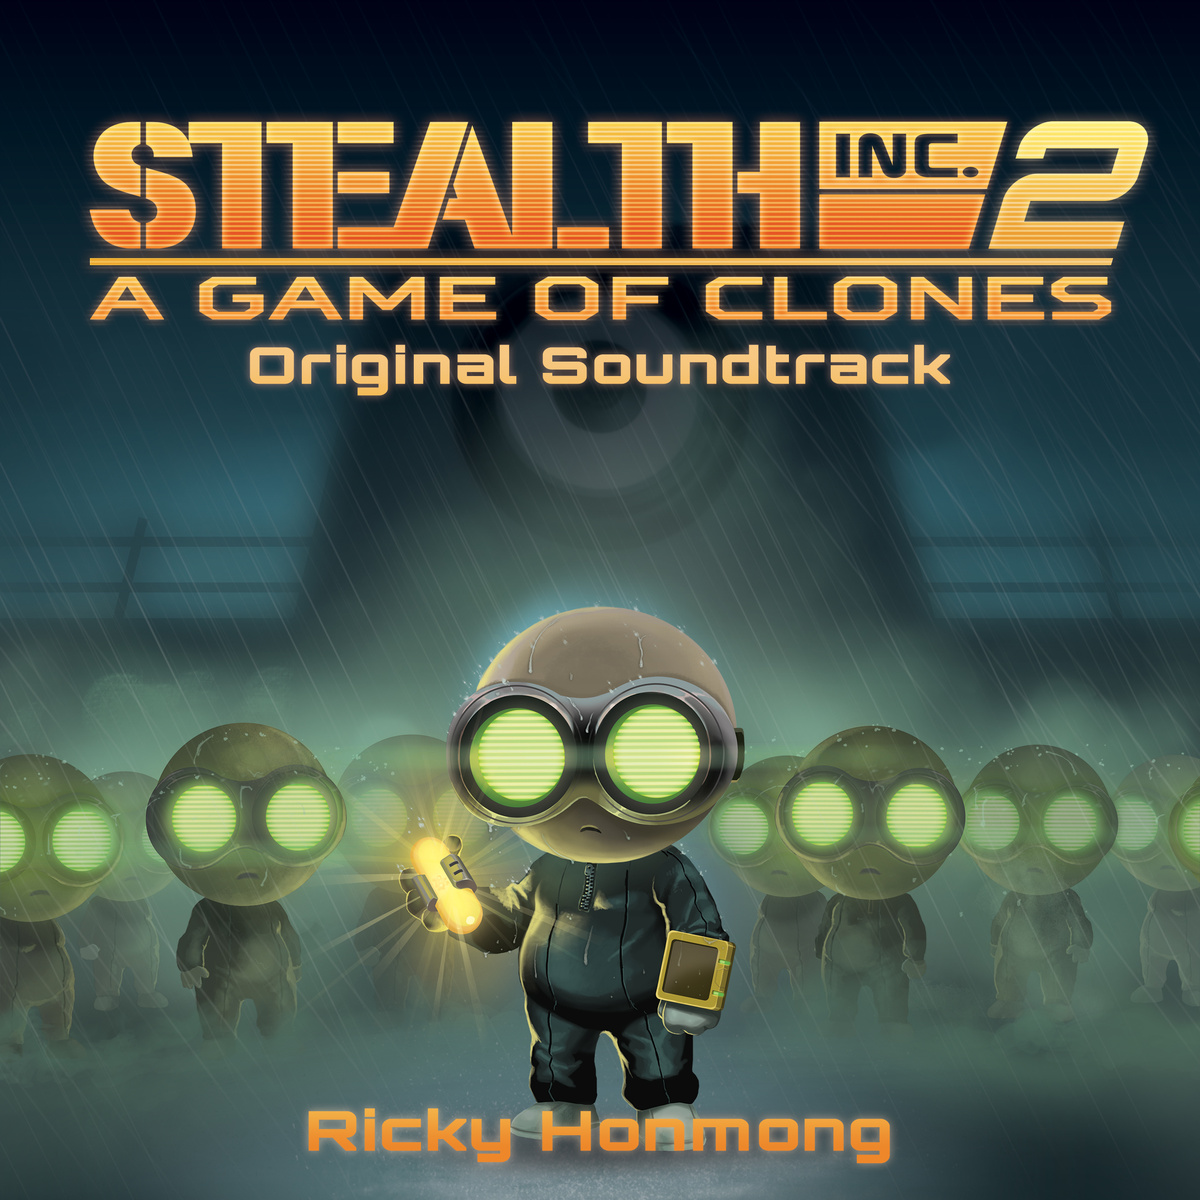 Stealth Inc 2: A Game of Clones - Official Soundtrack screenshot